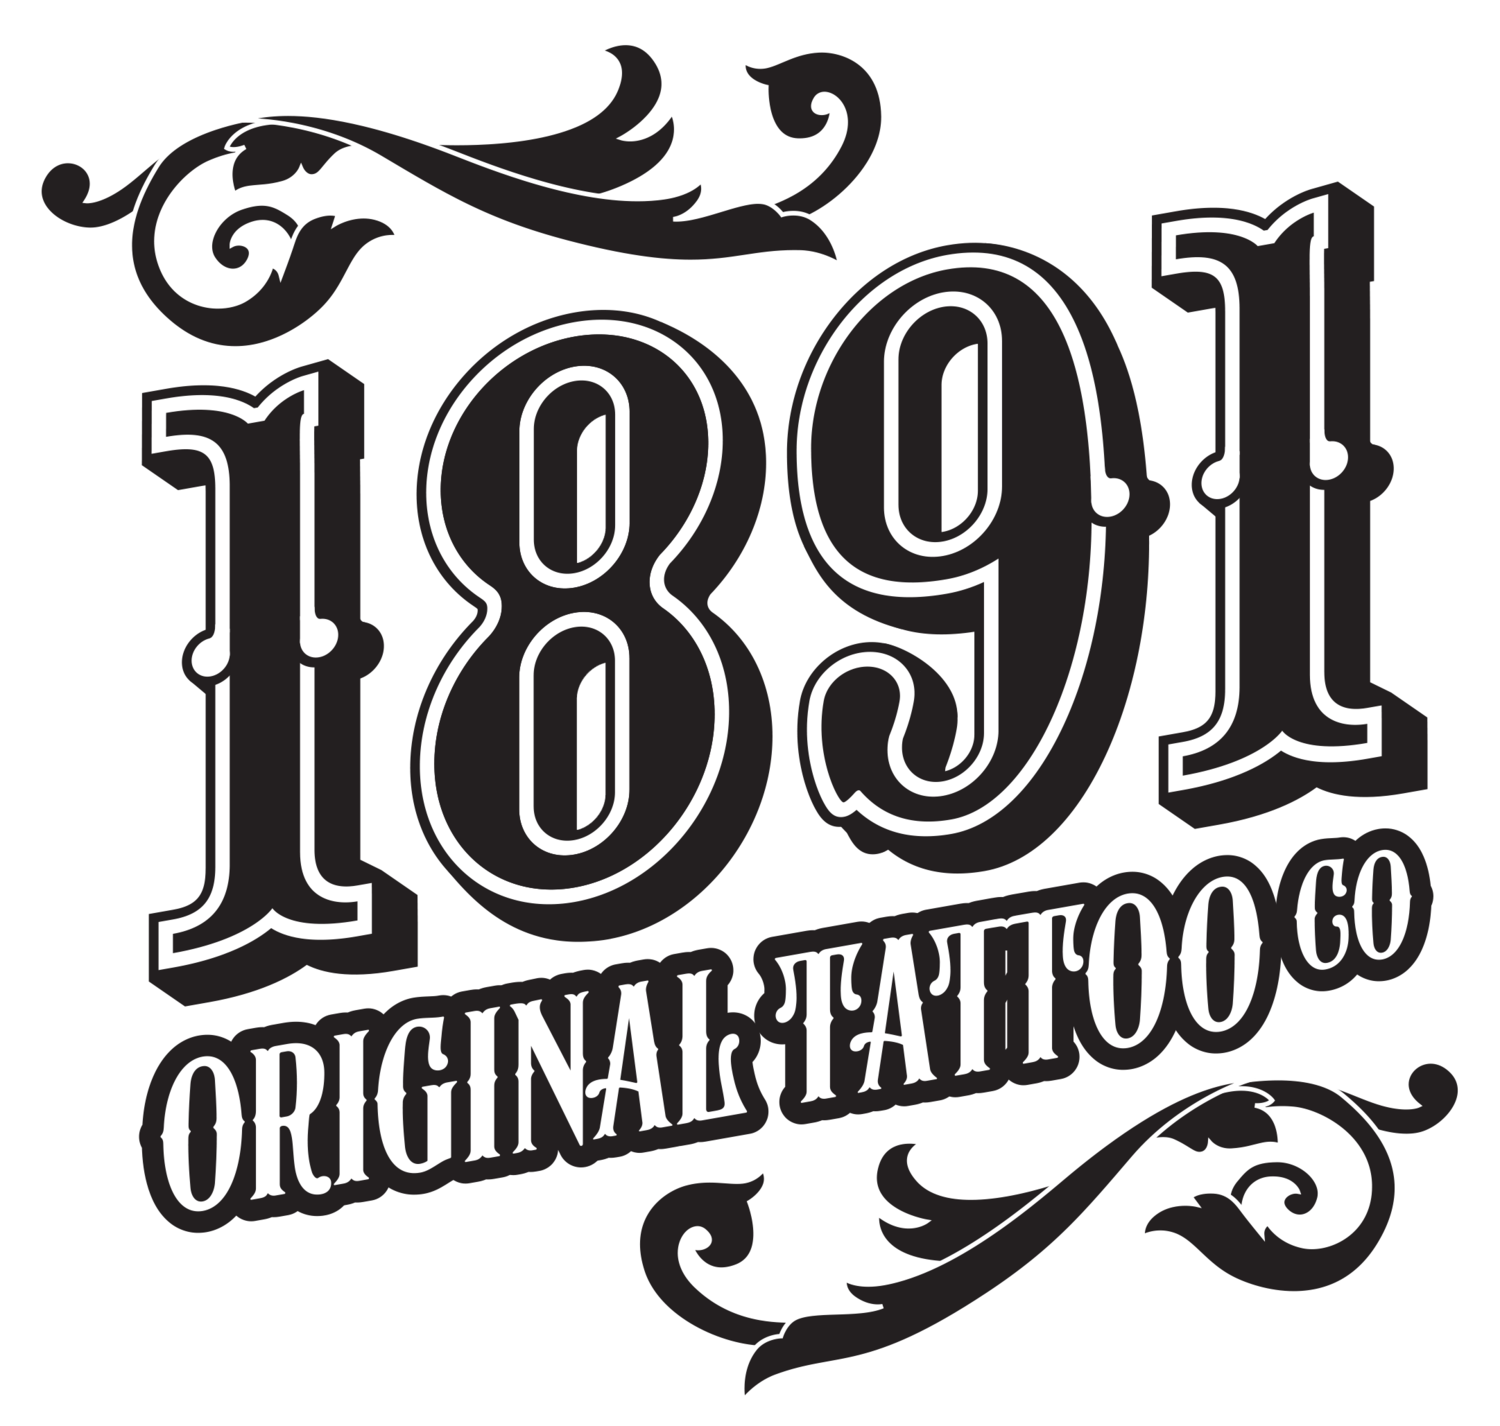 1891 Original Tattoo Co.